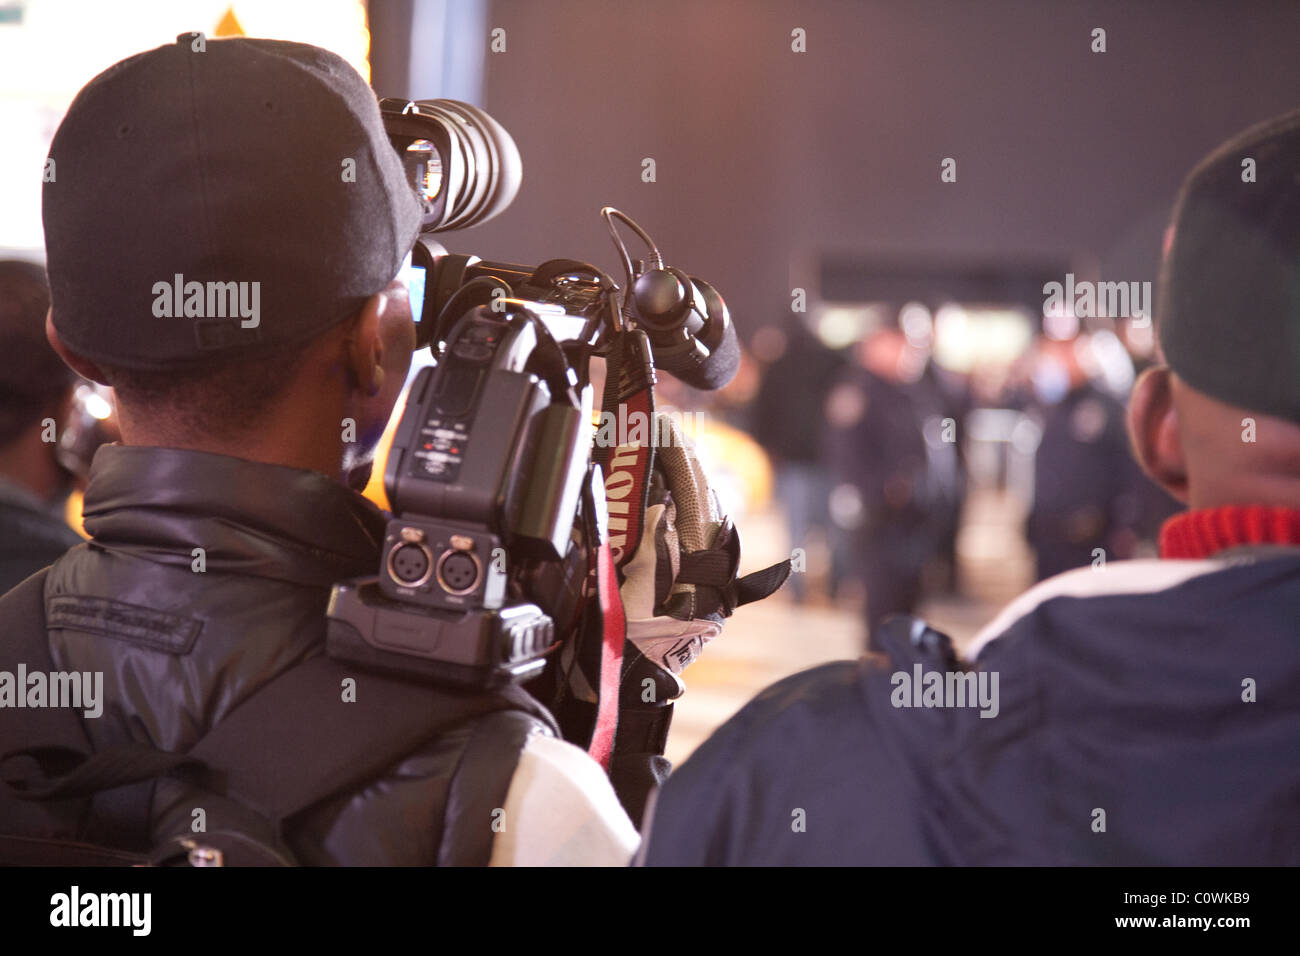 Cameramen with camera film an event - Stock Image